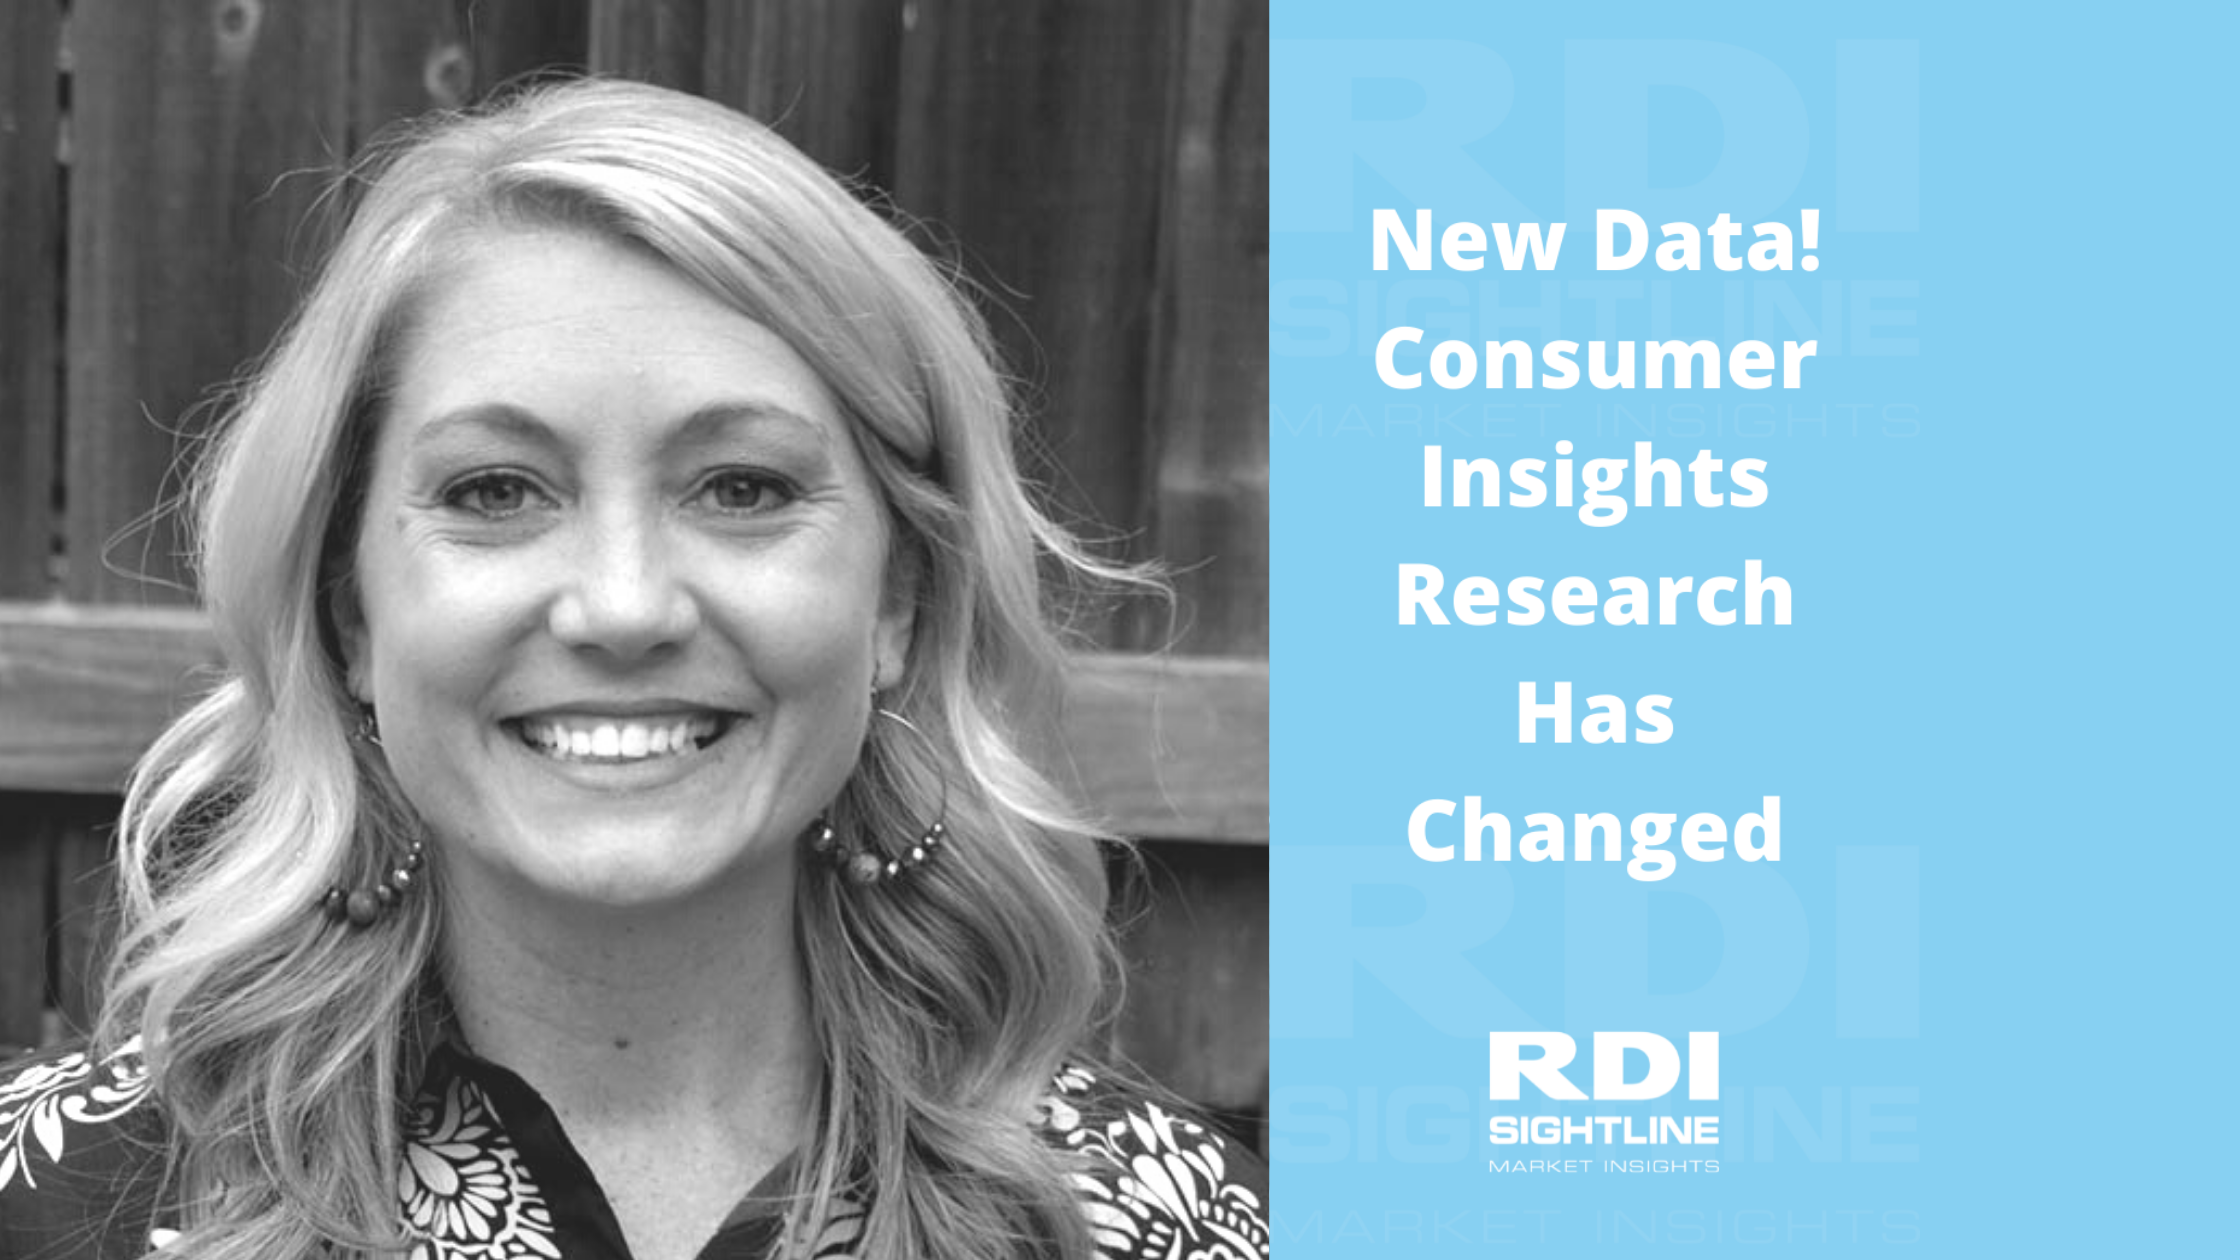 RDI Sightline blog - New Data! Consumer Insights Research Has Changed